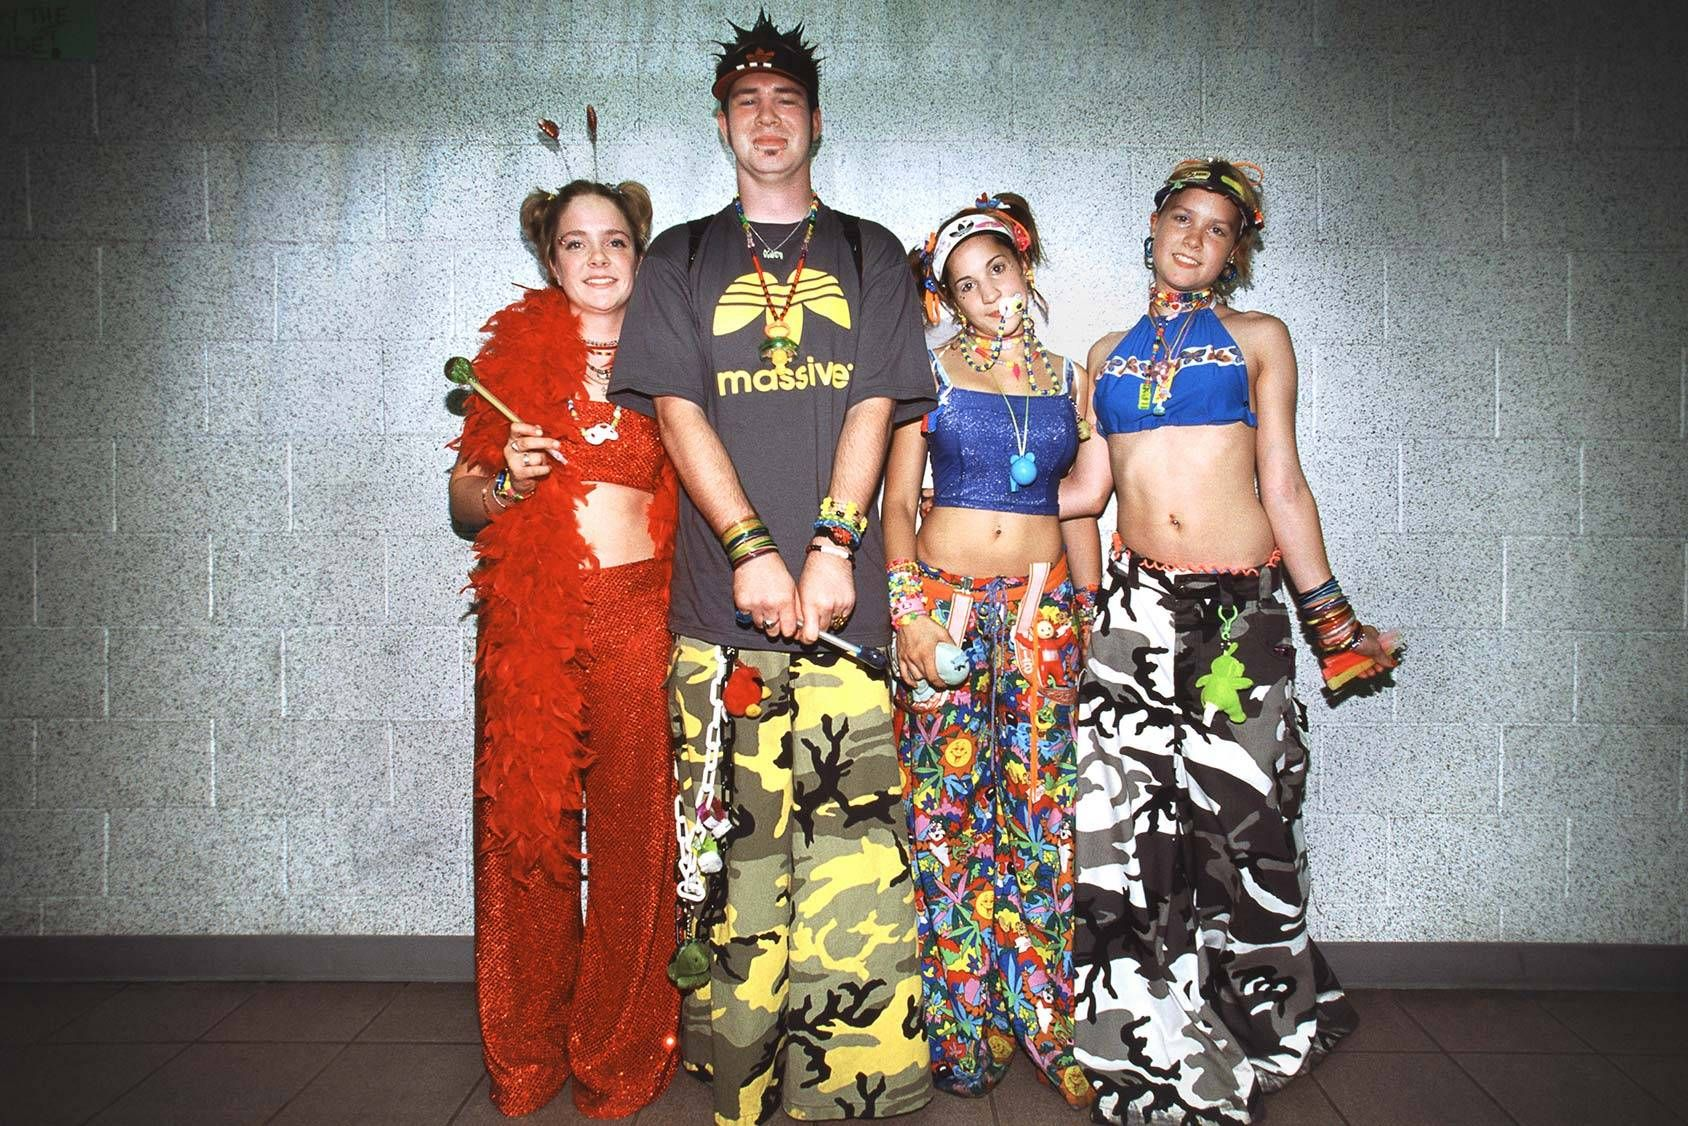 Classic Old School Ravers 6am Crew Rave Fashion Rave Culture Fashion Rave Outfits